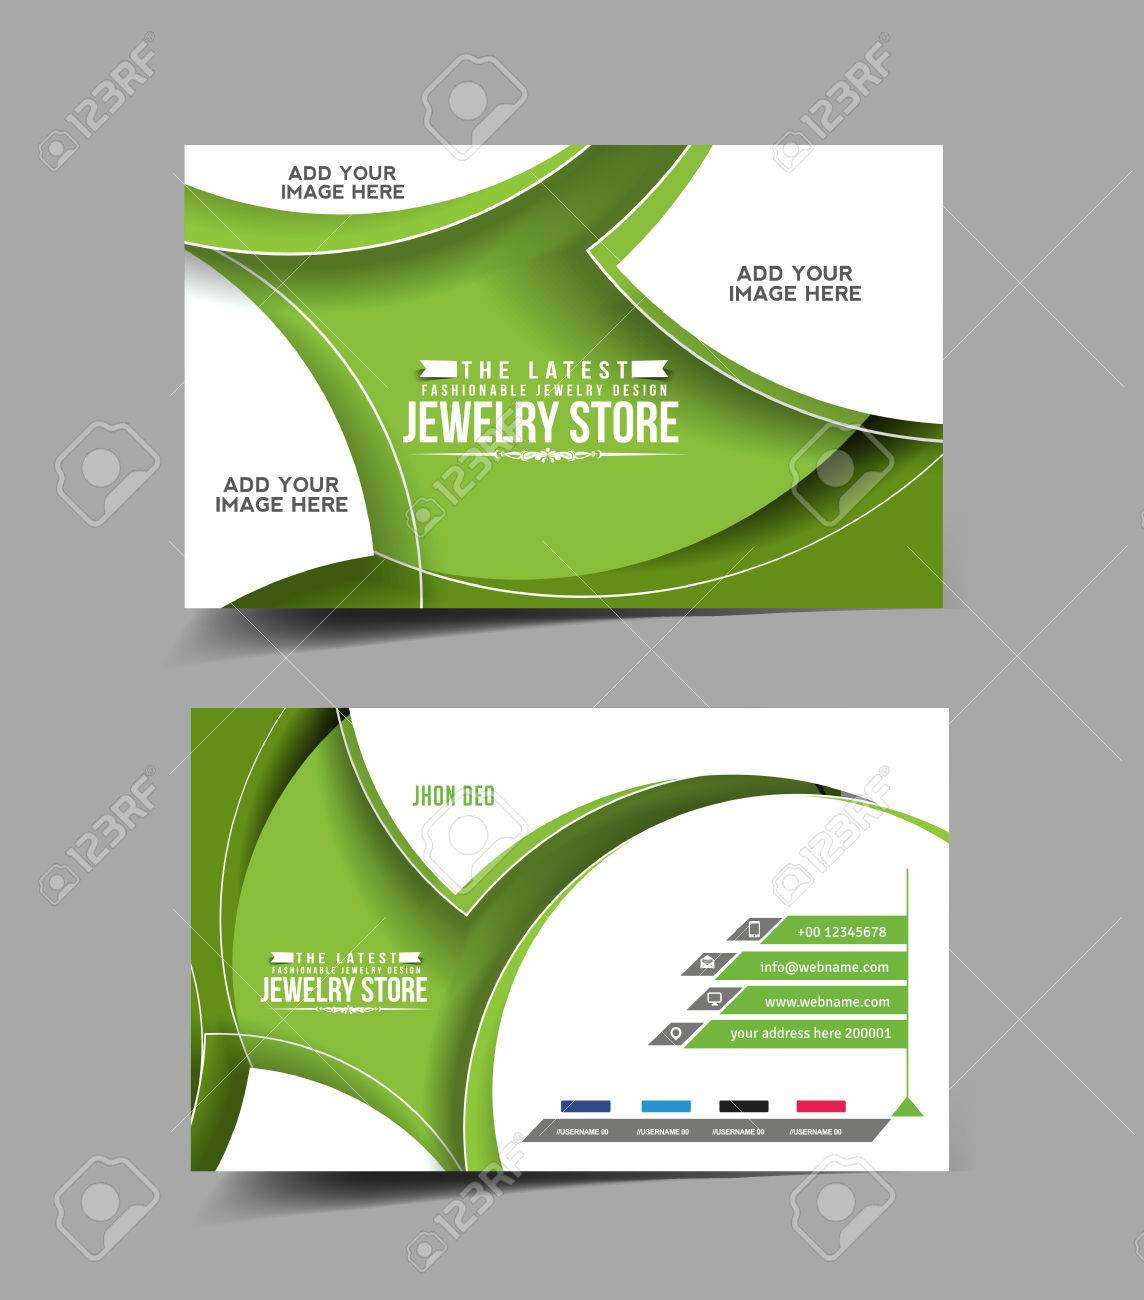 Jewelry Store Business Card Vector Design Royalty Free Cliparts ...